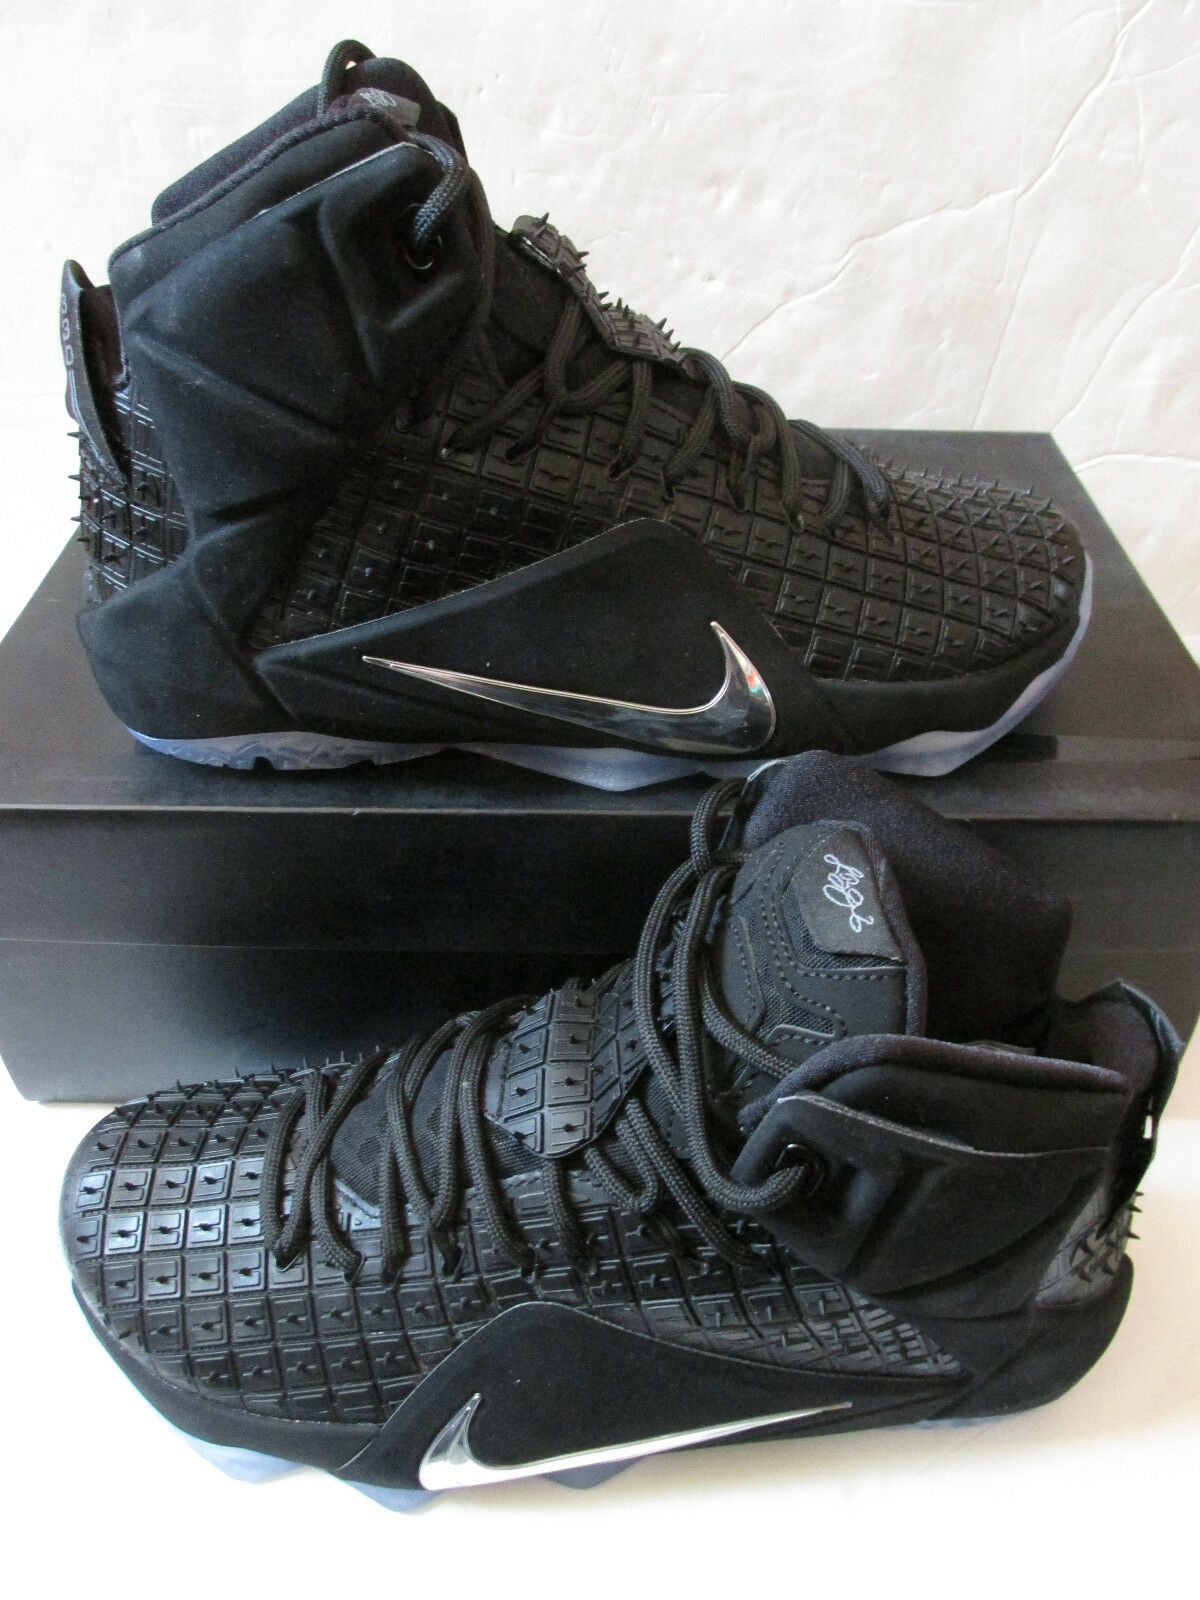 nike lebron XII EXT hi RC QS homme  hi EXT top trainers 744286 001 Baskets  chaussures 126288